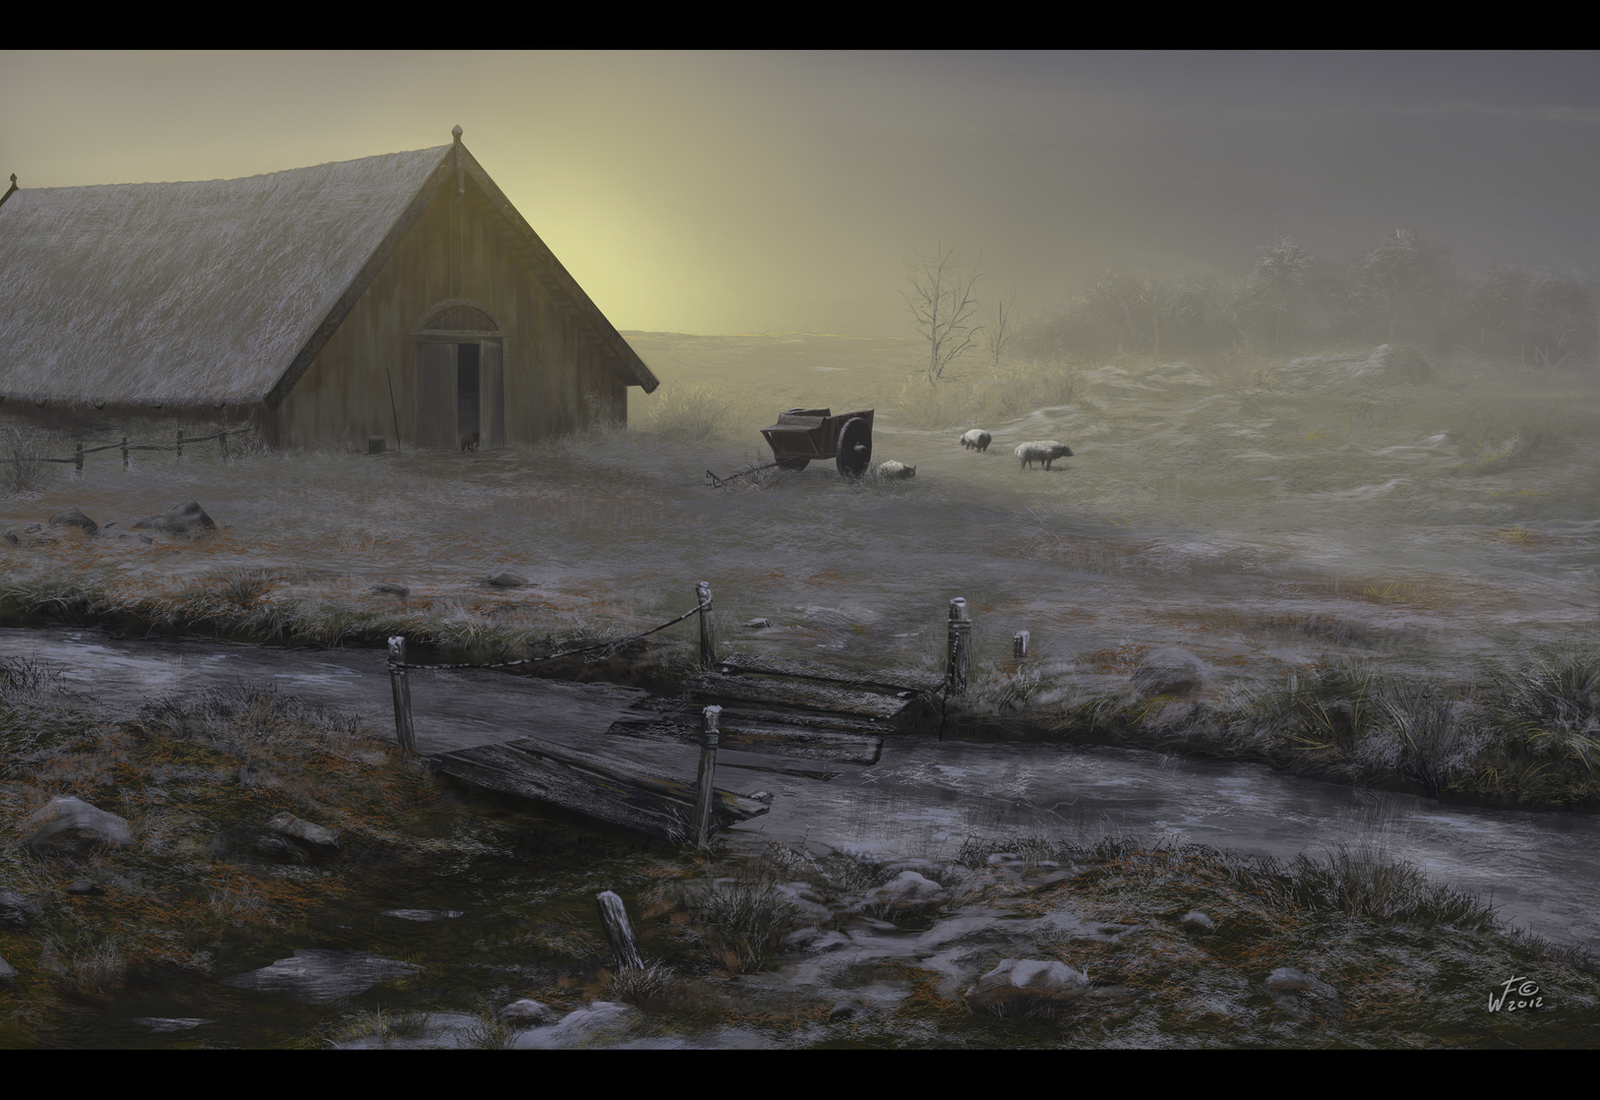 http://fc09.deviantart.net/fs71/i/2012/345/5/8/environment_study_07___the_hall_by_woutart-d5nr2up.png